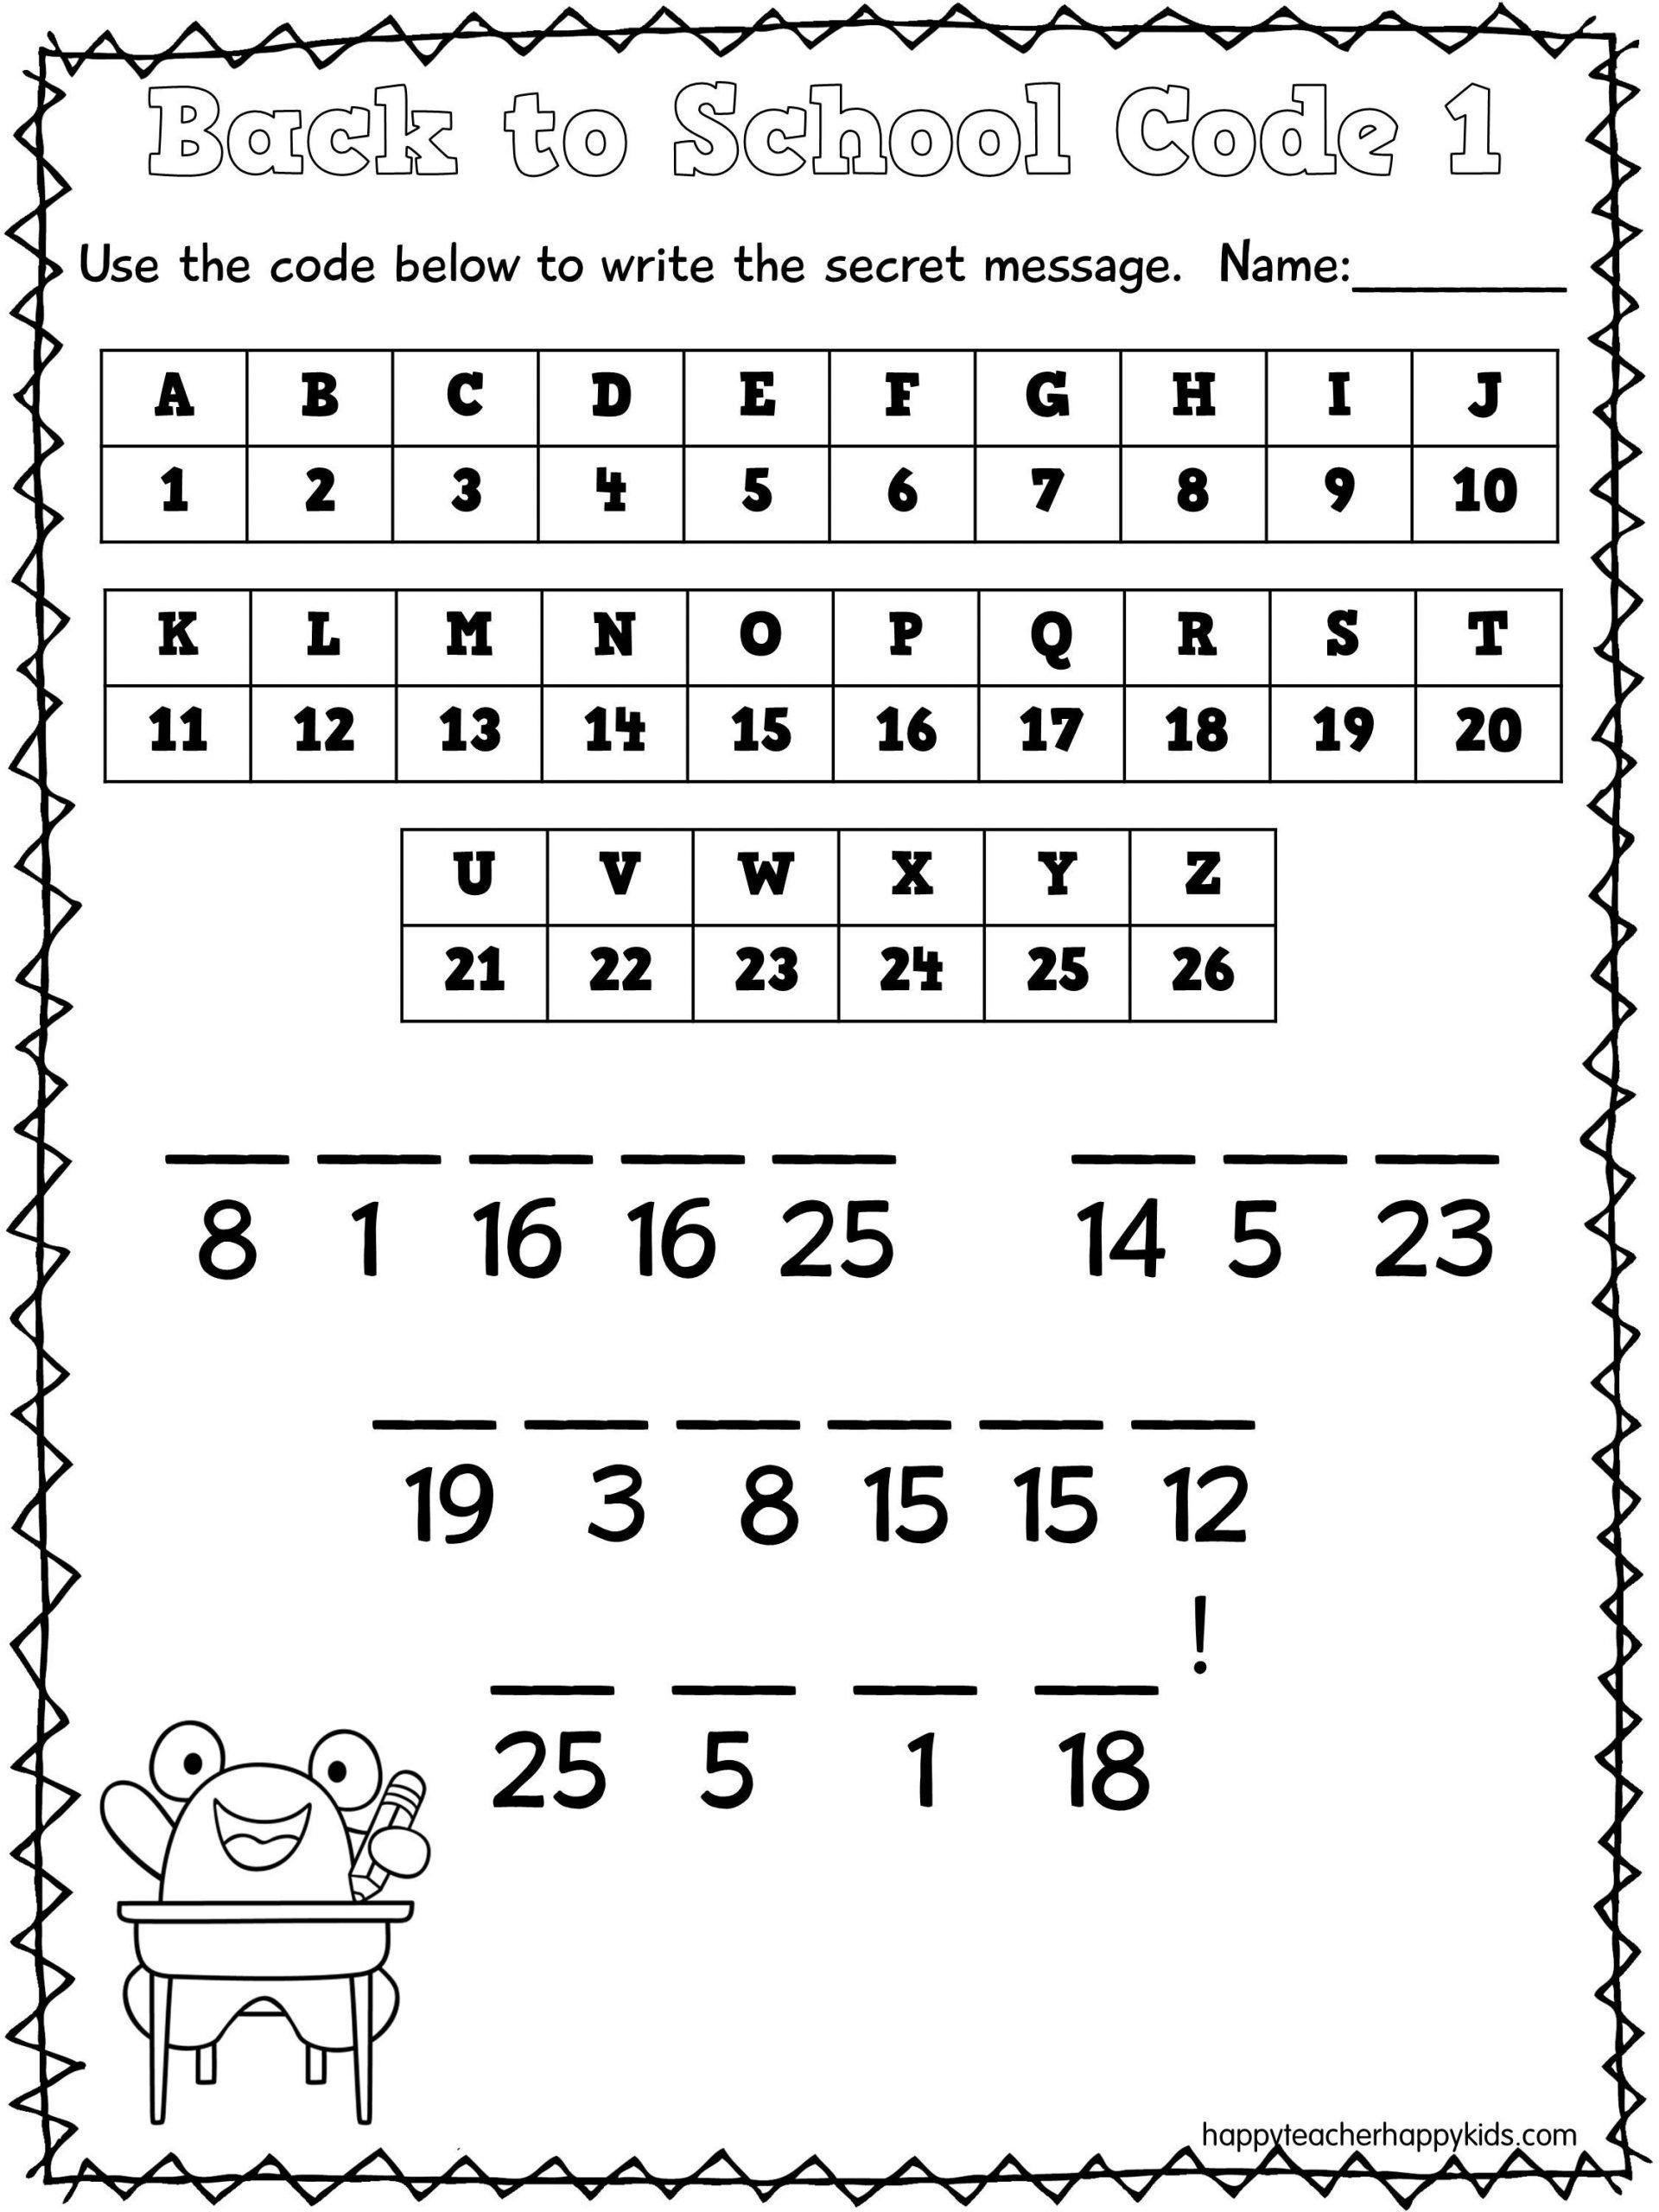 Crack the Code Worksheets Printable 30 Math Secret Code Worksheets In 2020